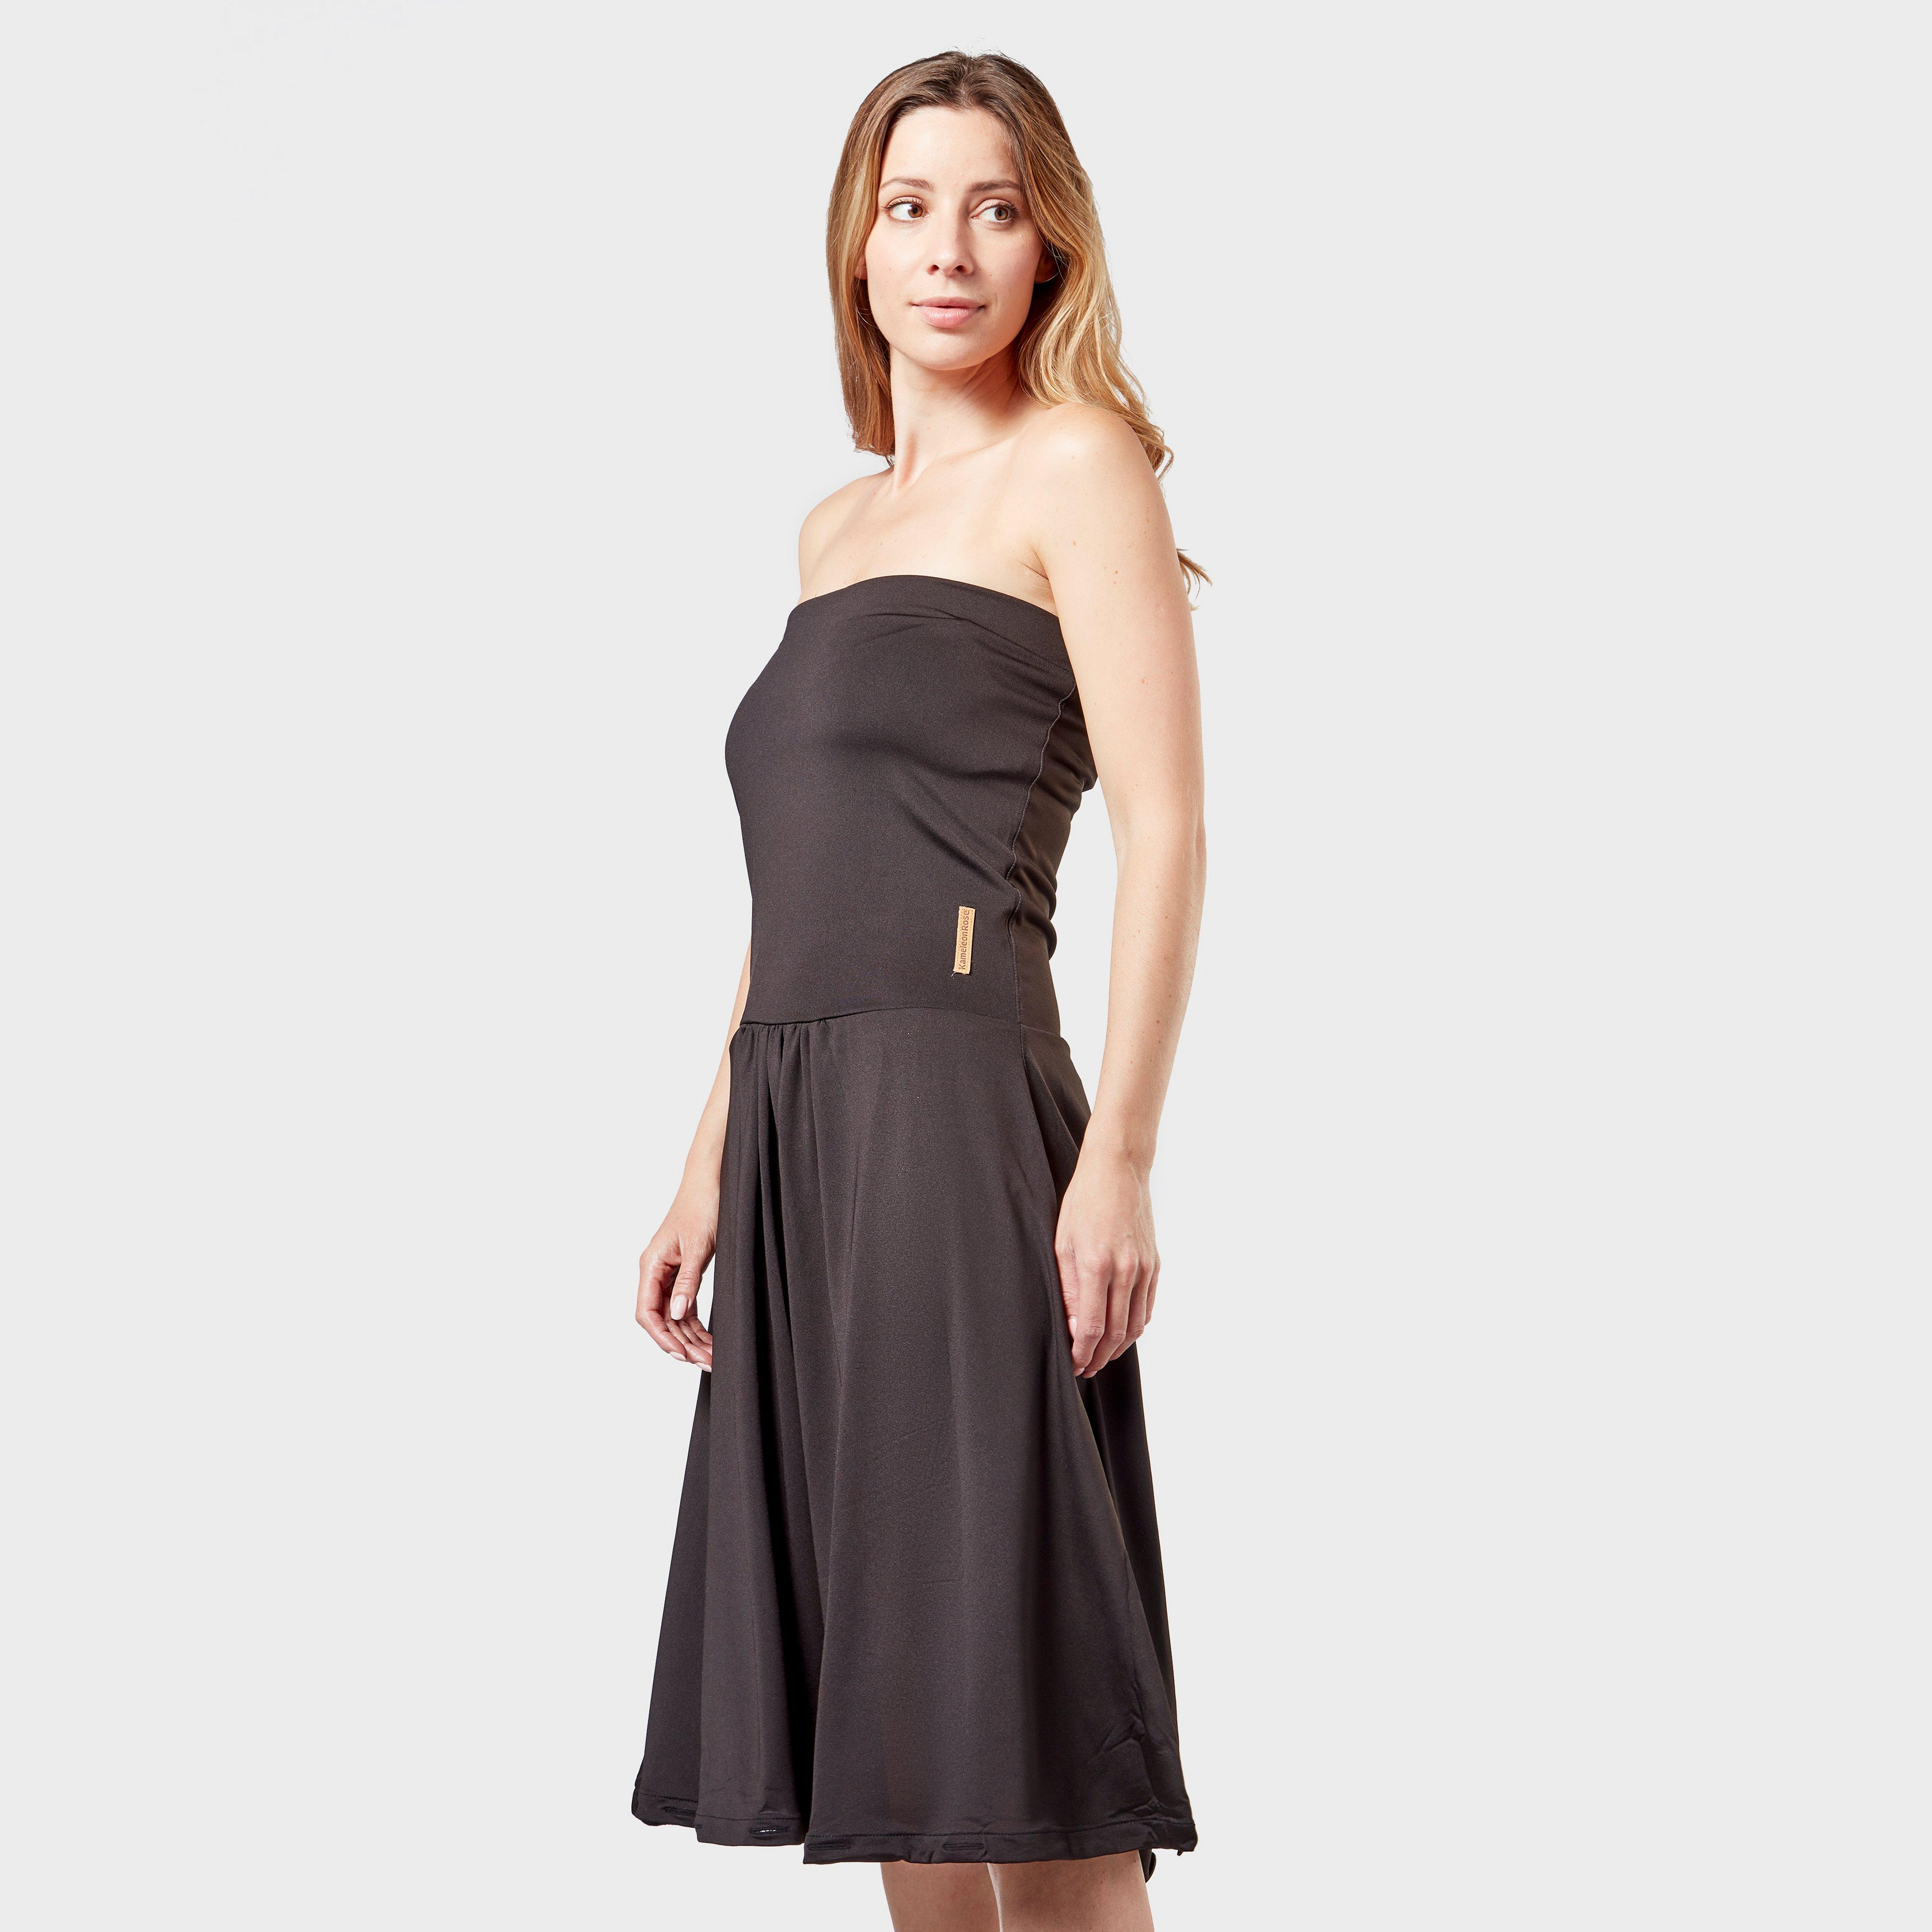 Kameleon Rose Kameleon Rose Womens Travel Dress - Black, Black